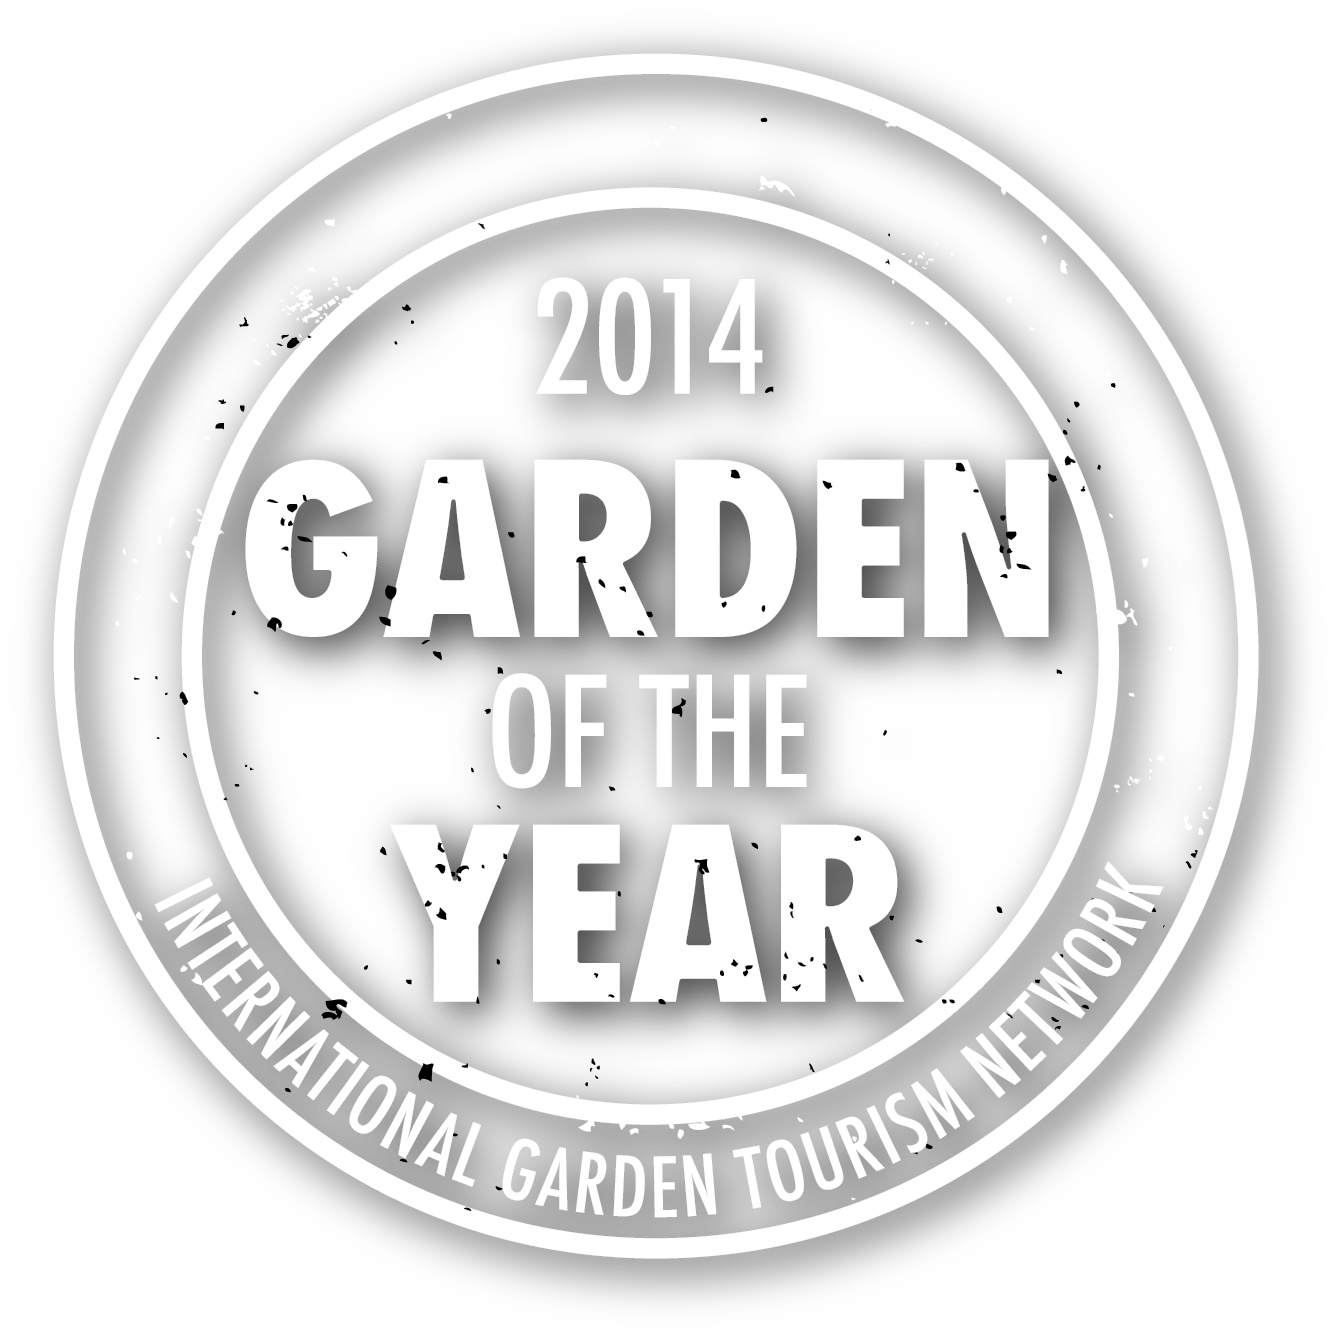 International Garden of the Year 2014